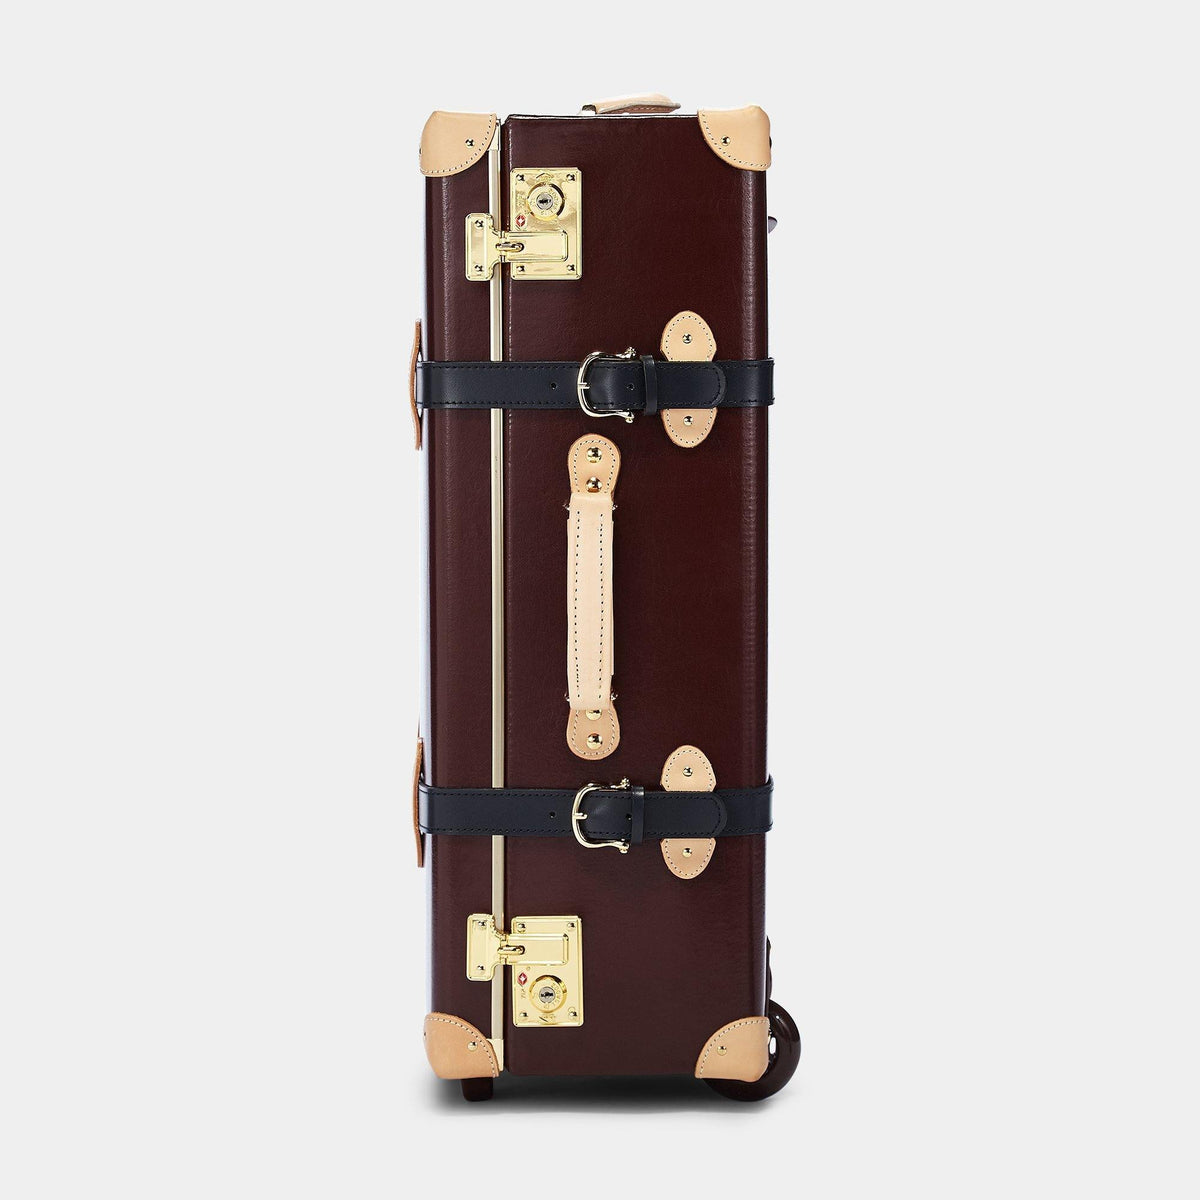 The Architect Stowaway in Burgundy - Vintage Style Leather Case - Exterior Side